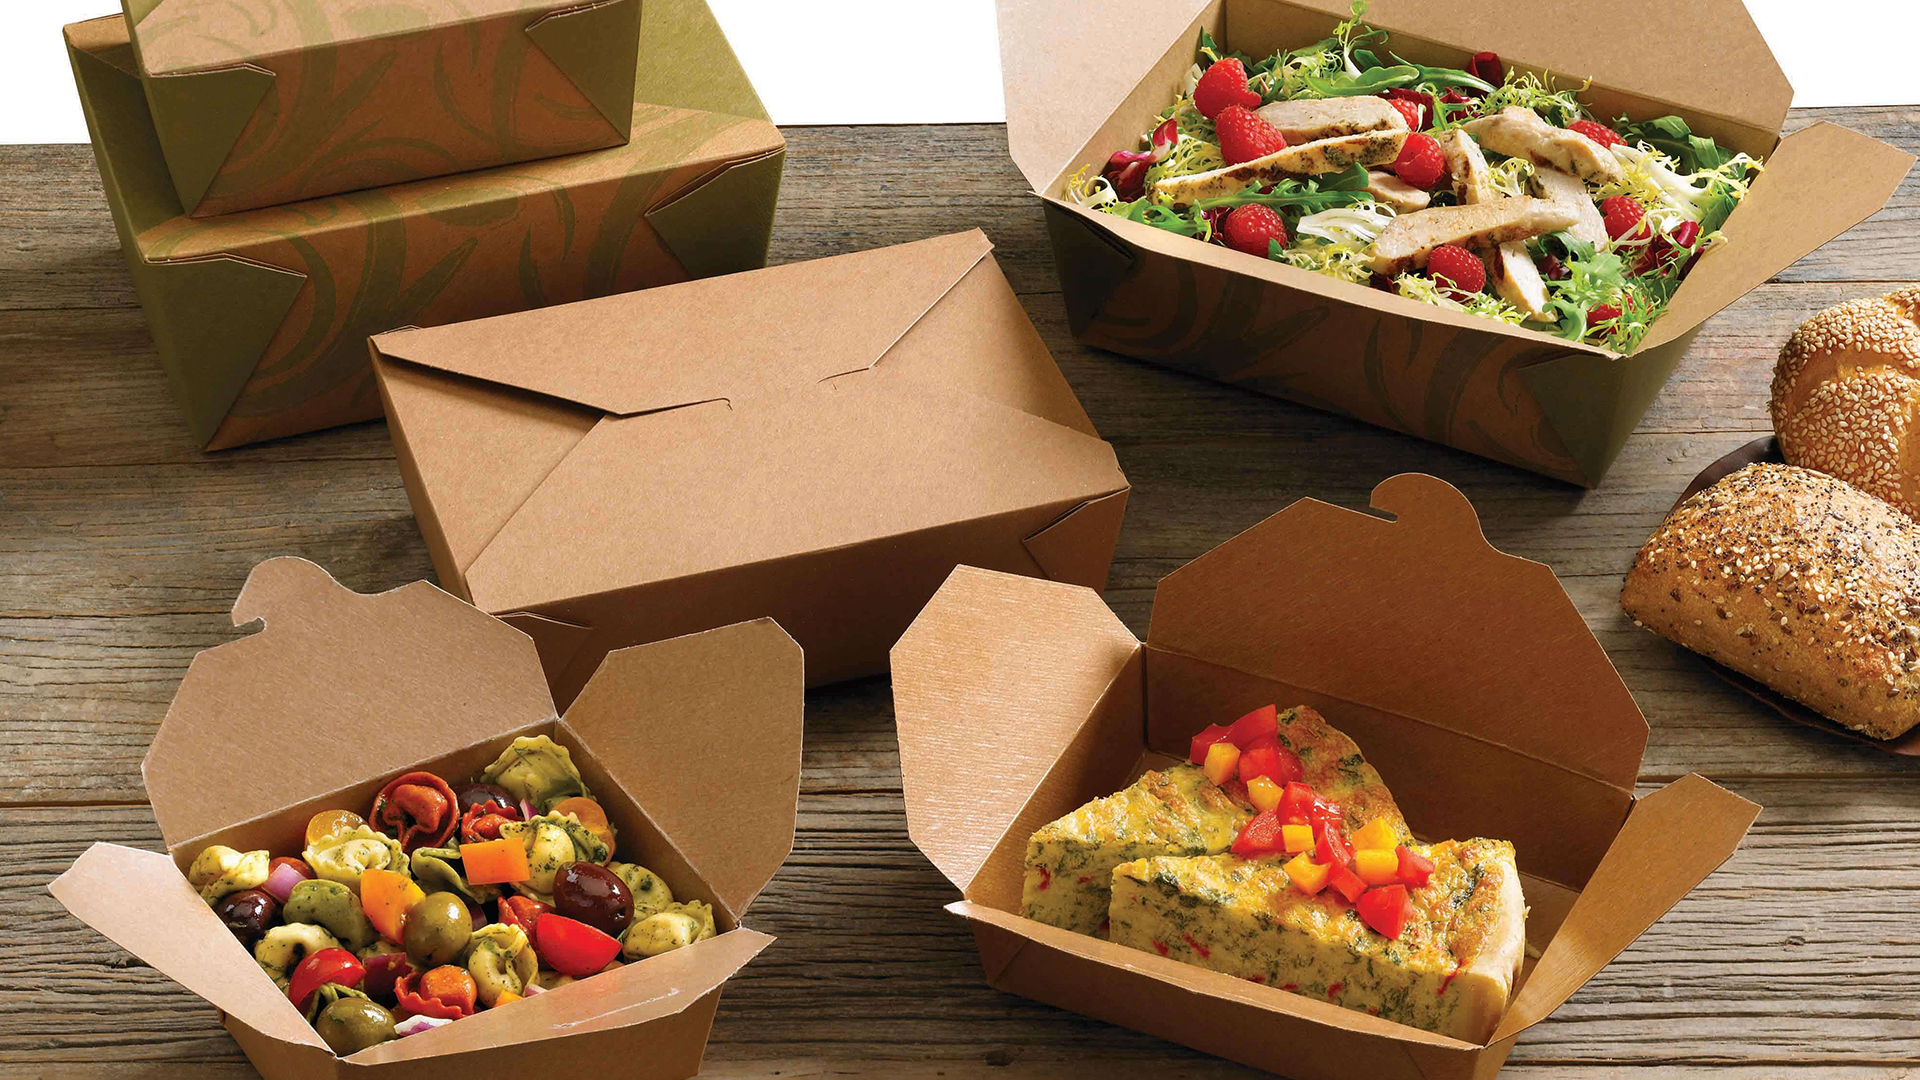 Lunch In A Box Packed Meal Catering And Delivery Services In Dubai Classic Catering